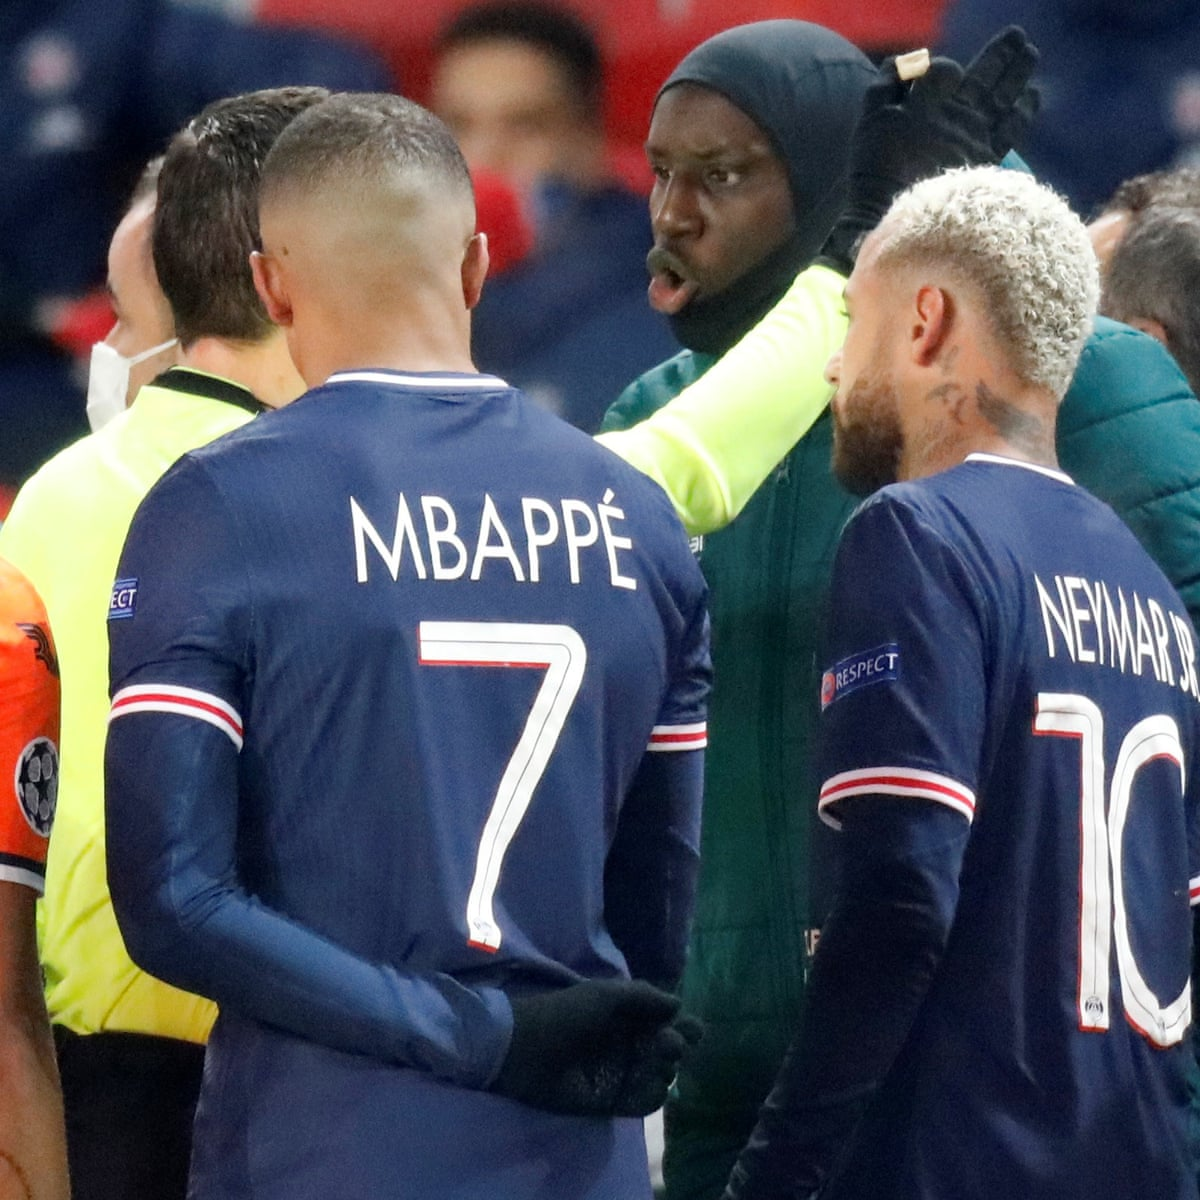 PSG and Istanbul Basaksehir players left the field following an alleged incident of racial profiling in their UCL fixture